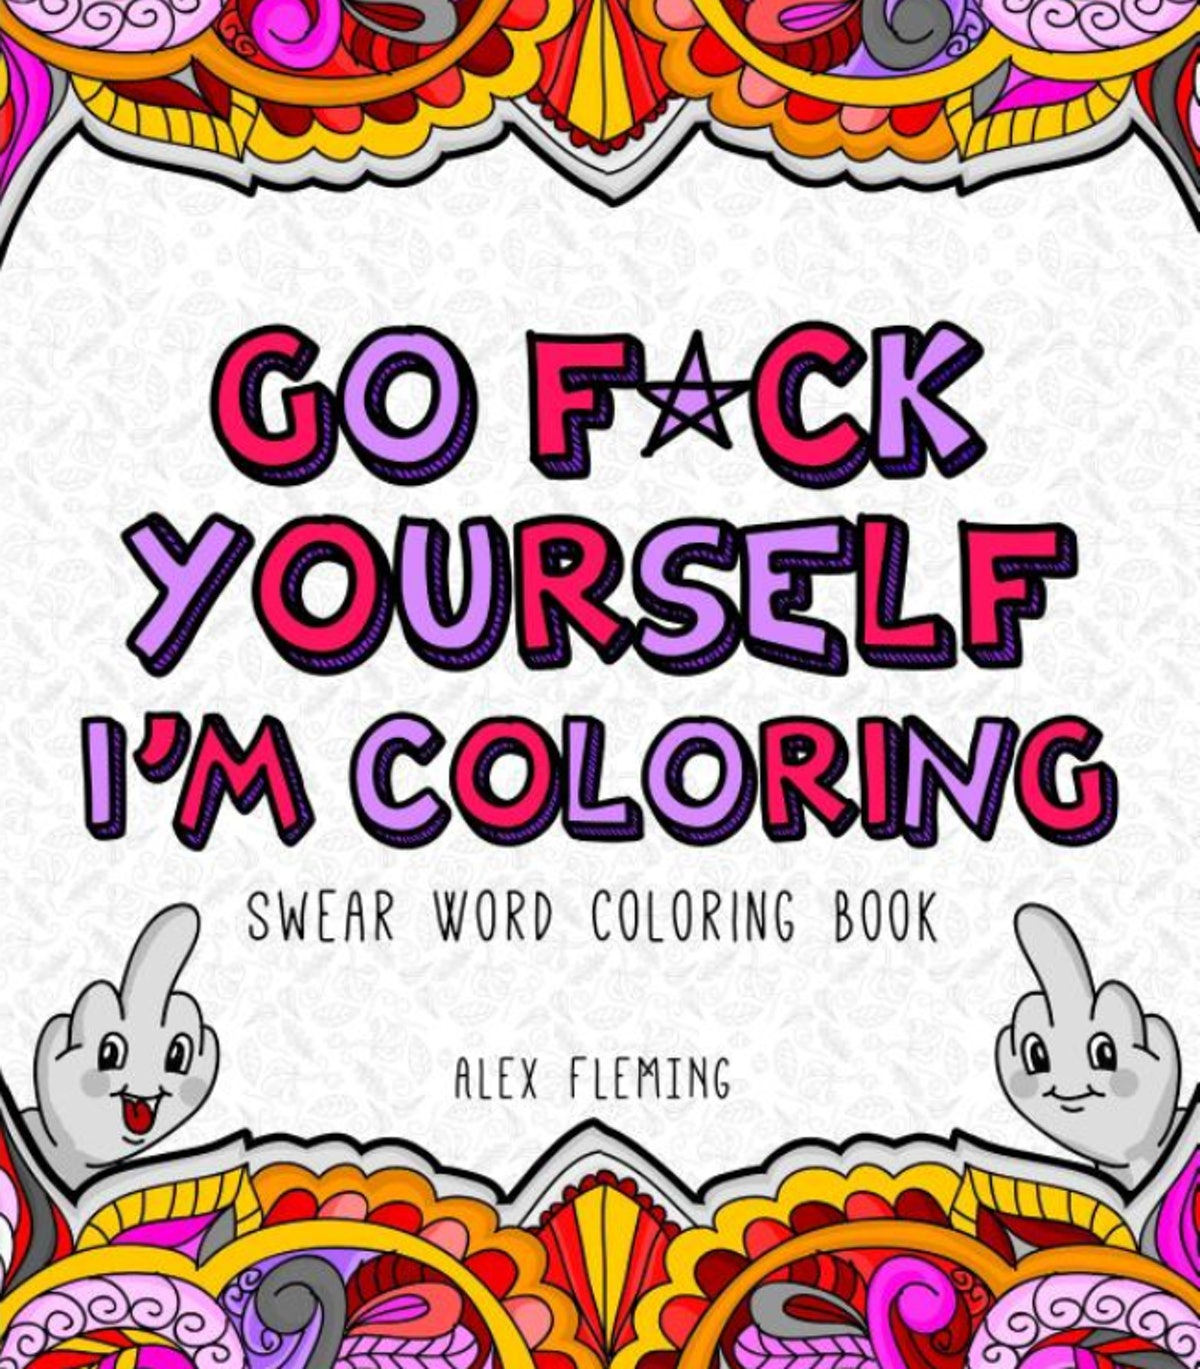 Go F*ck Yourself, I'm Coloring